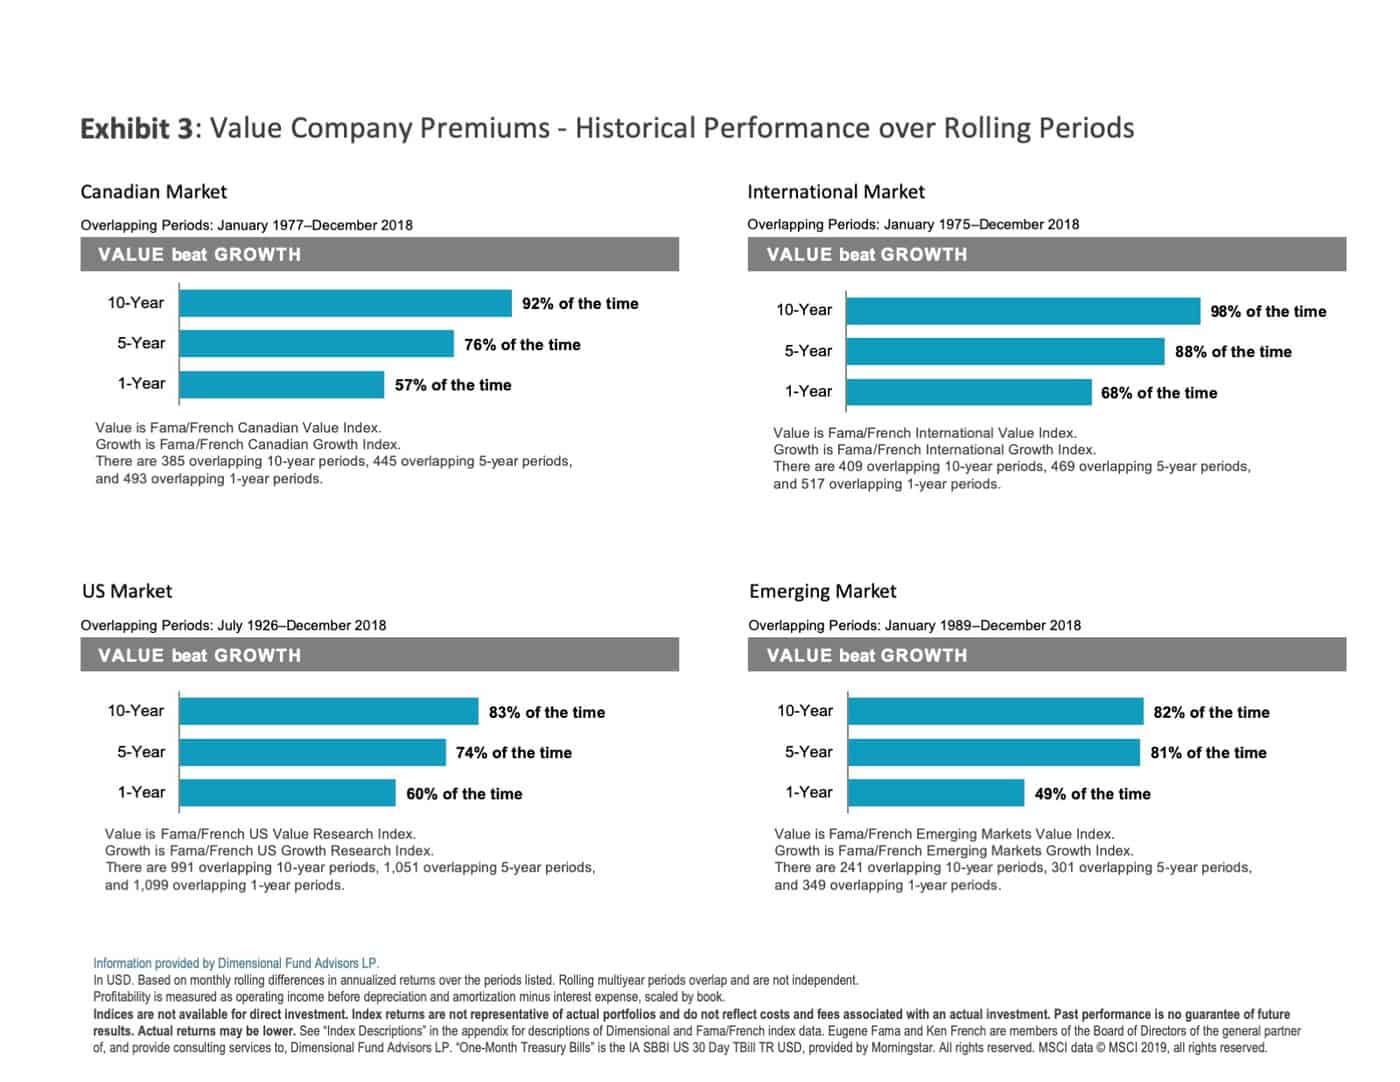 Value Company Premiums - Historical Performance over Rolling Periods